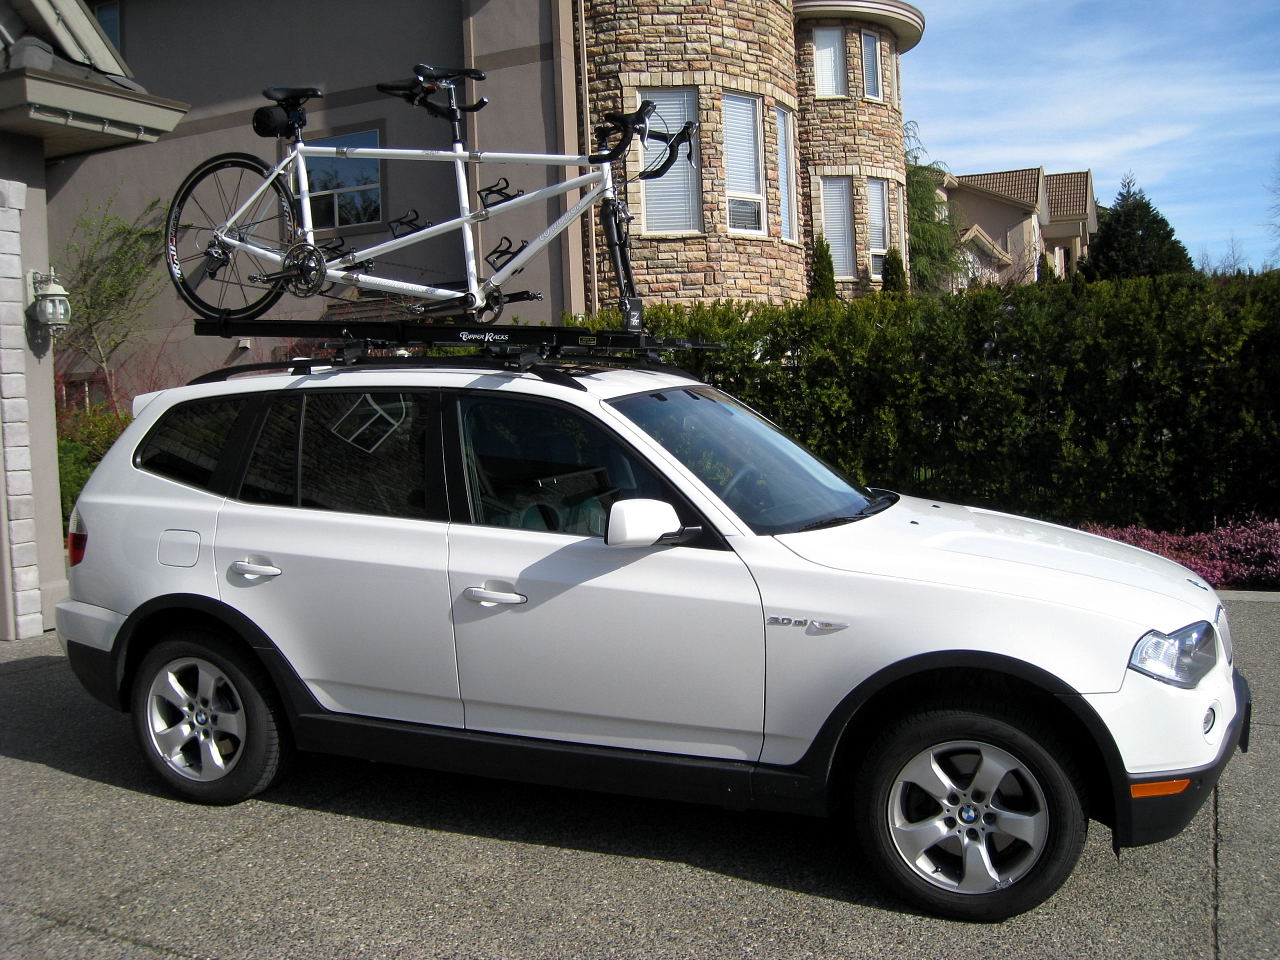 Pics Of My Thule T2 Bike Rack Xoutpost Com